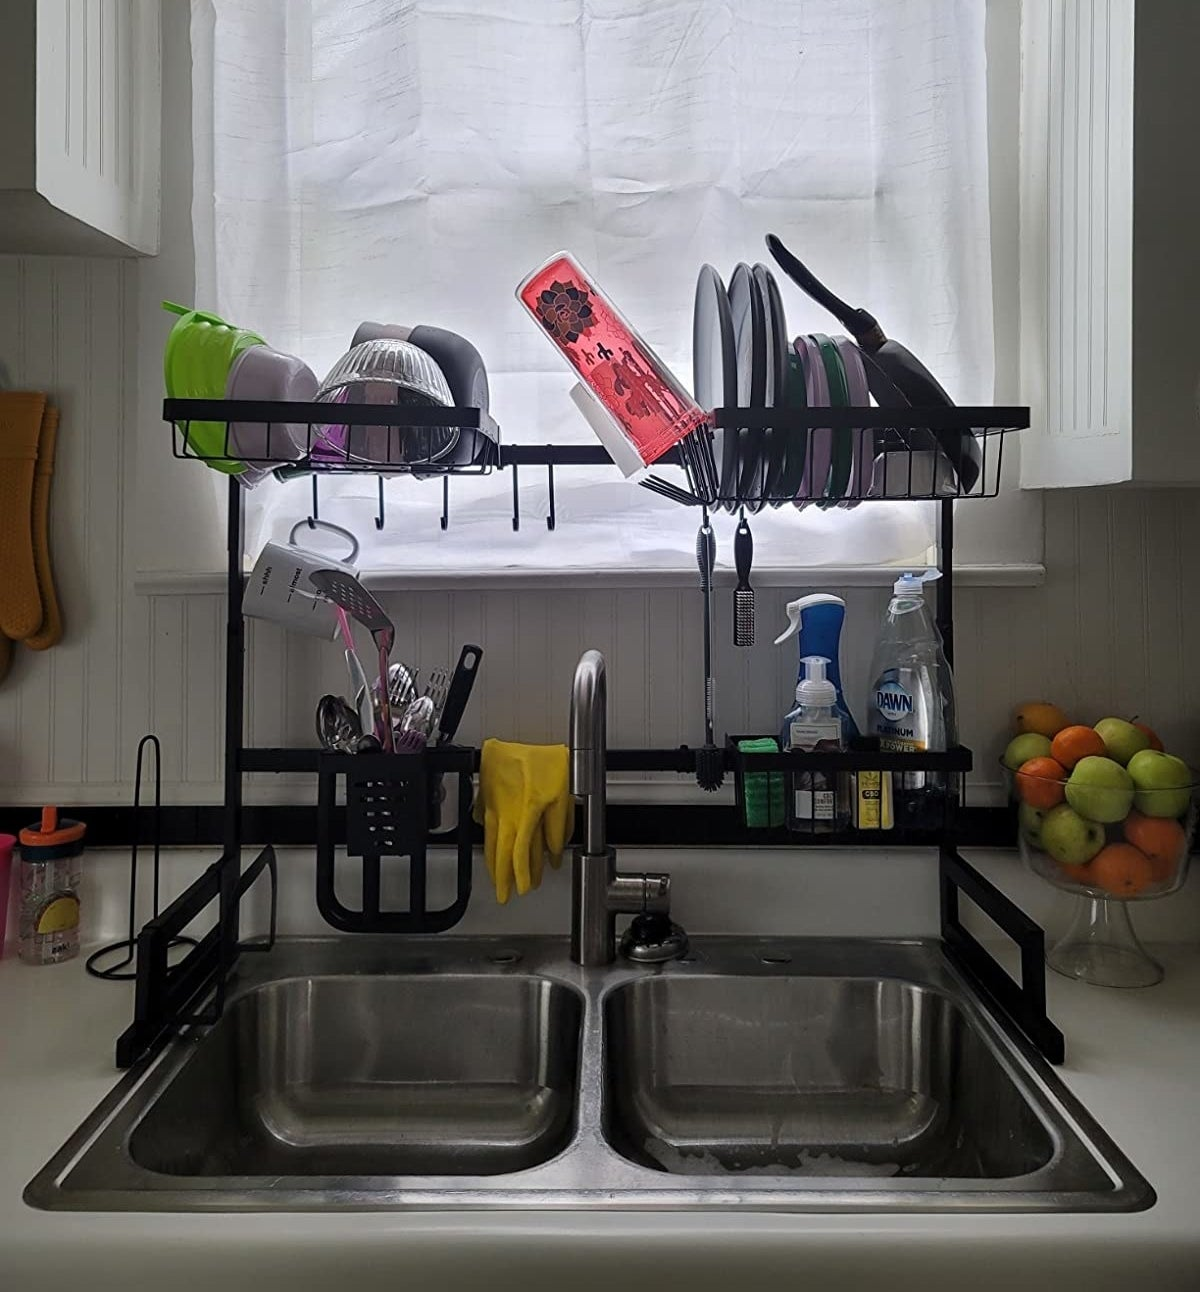 image of the over-the-sink drying rack in a reviewer's kitchen